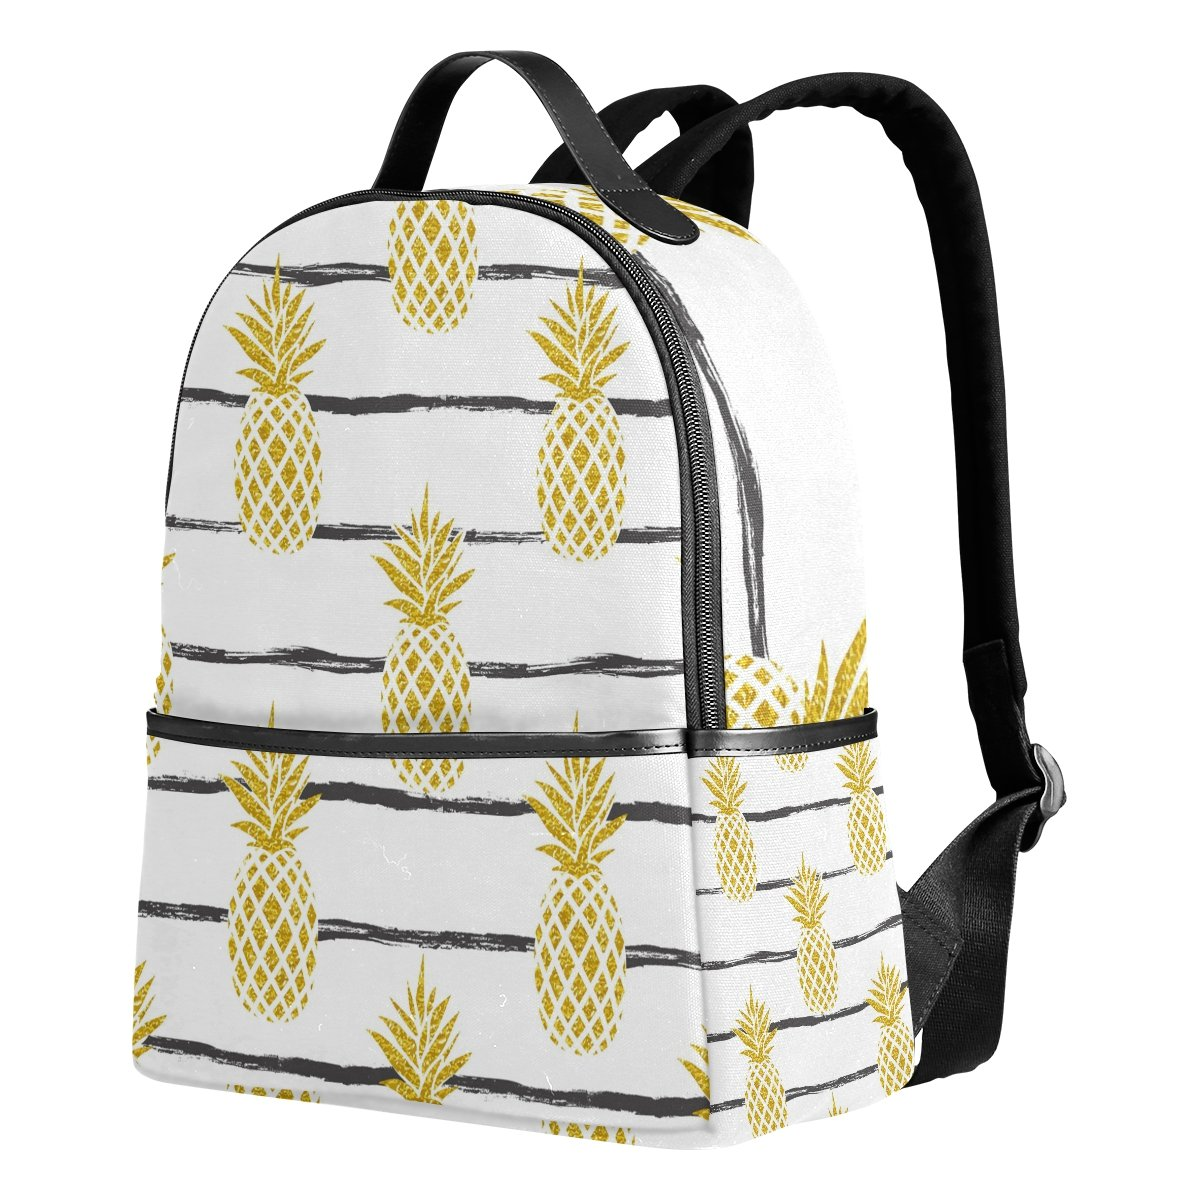 Use4 Summer Gold Pineapple on Striped Polyester Backpack School Travel Bag